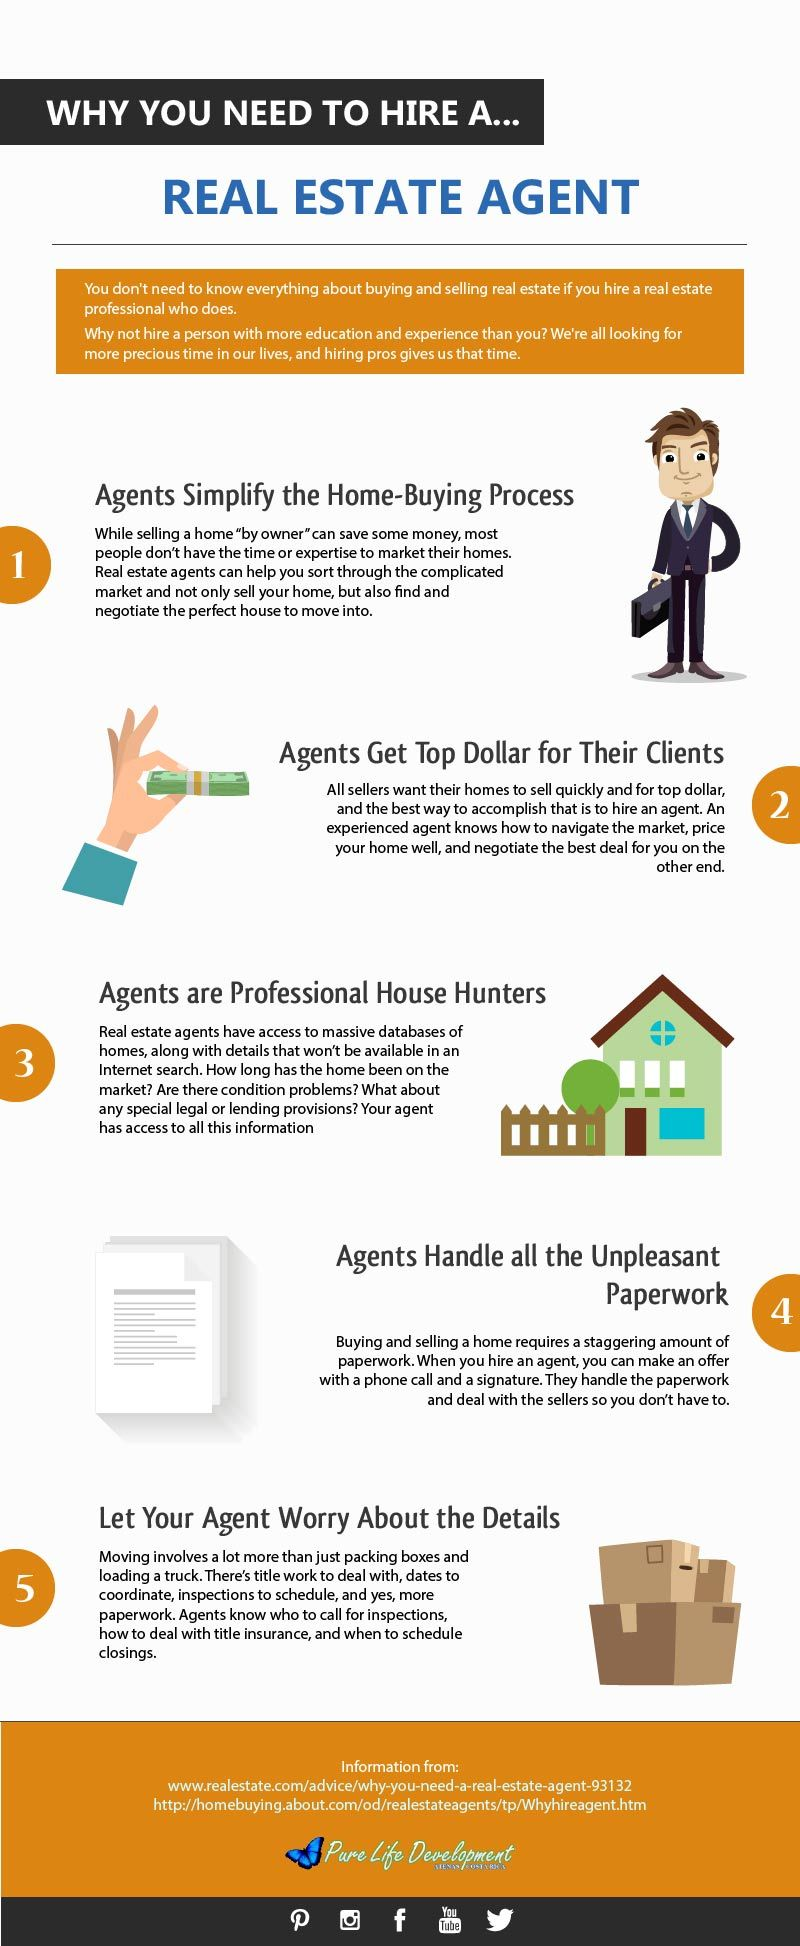 Our New Infographic Why You Need To Hire A Real Estate Agent